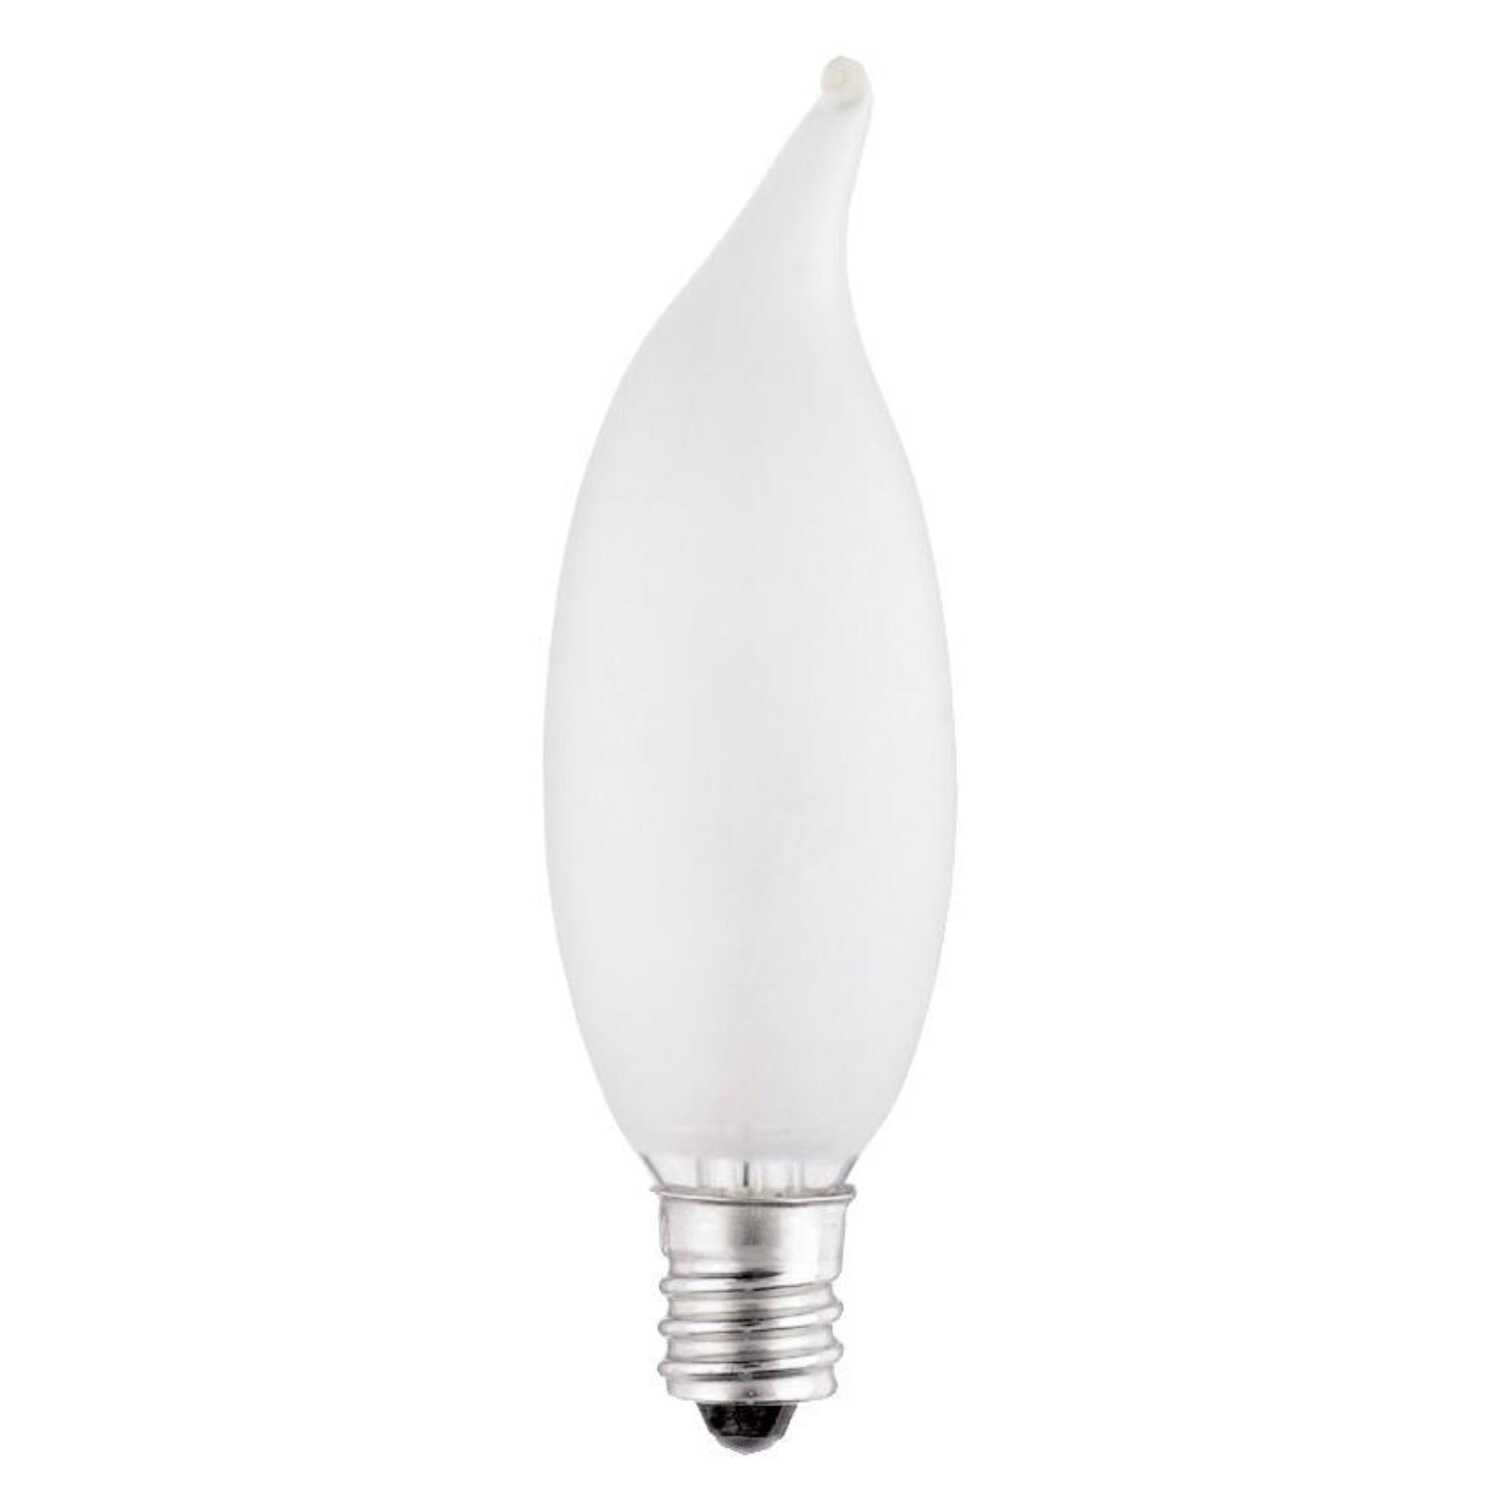 Westinghouse  15 watts E12  Incandescent Bulb  90 lumens Warm White  2 pk Decorative